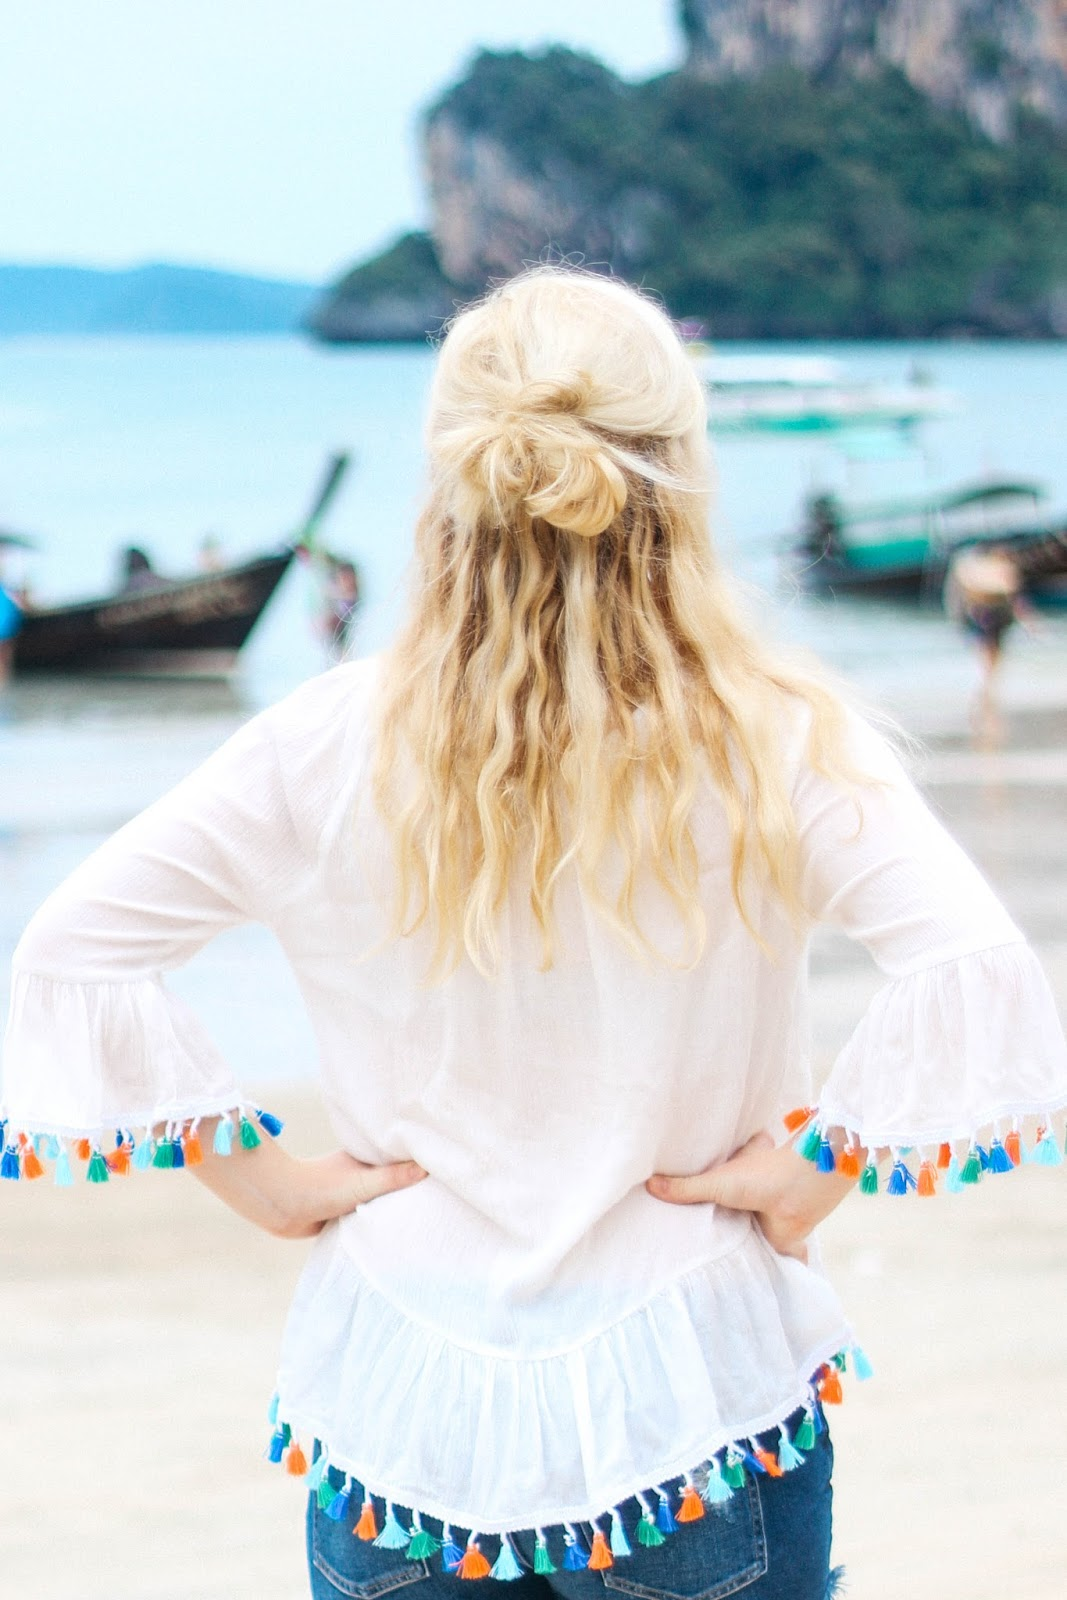 Global Fashion Gal (Brianna Degaston) wearing colorful tassels on vacation in Thailand.